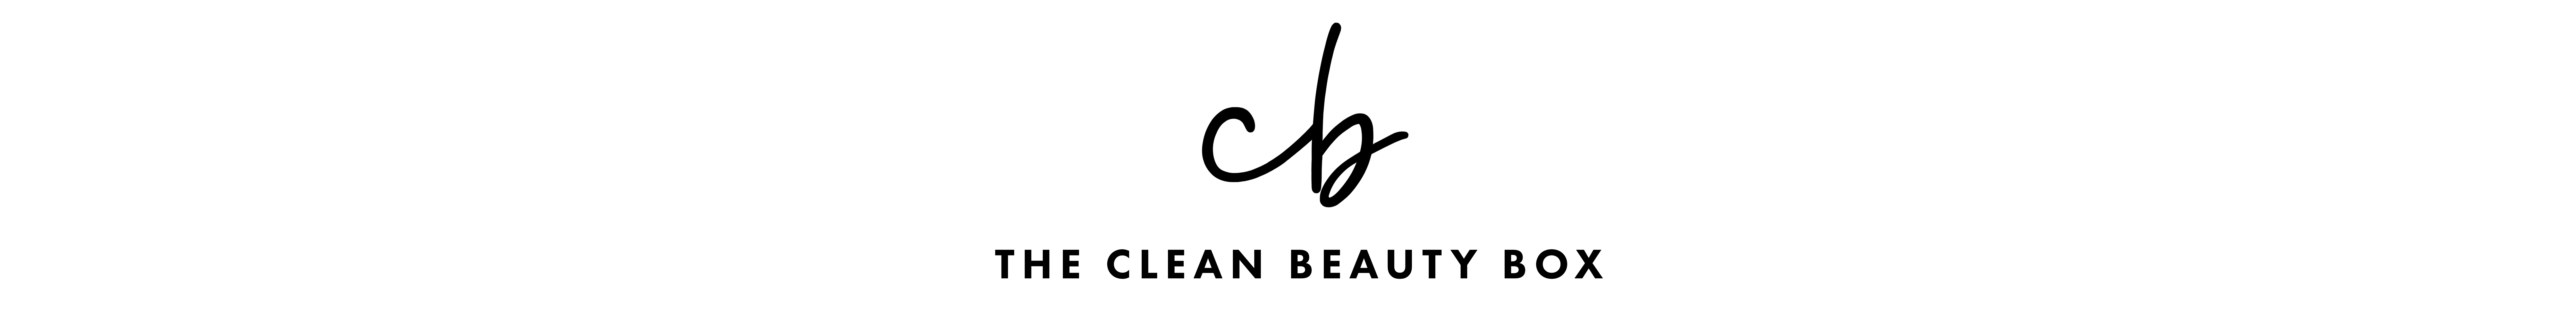 Clean Beauty Box